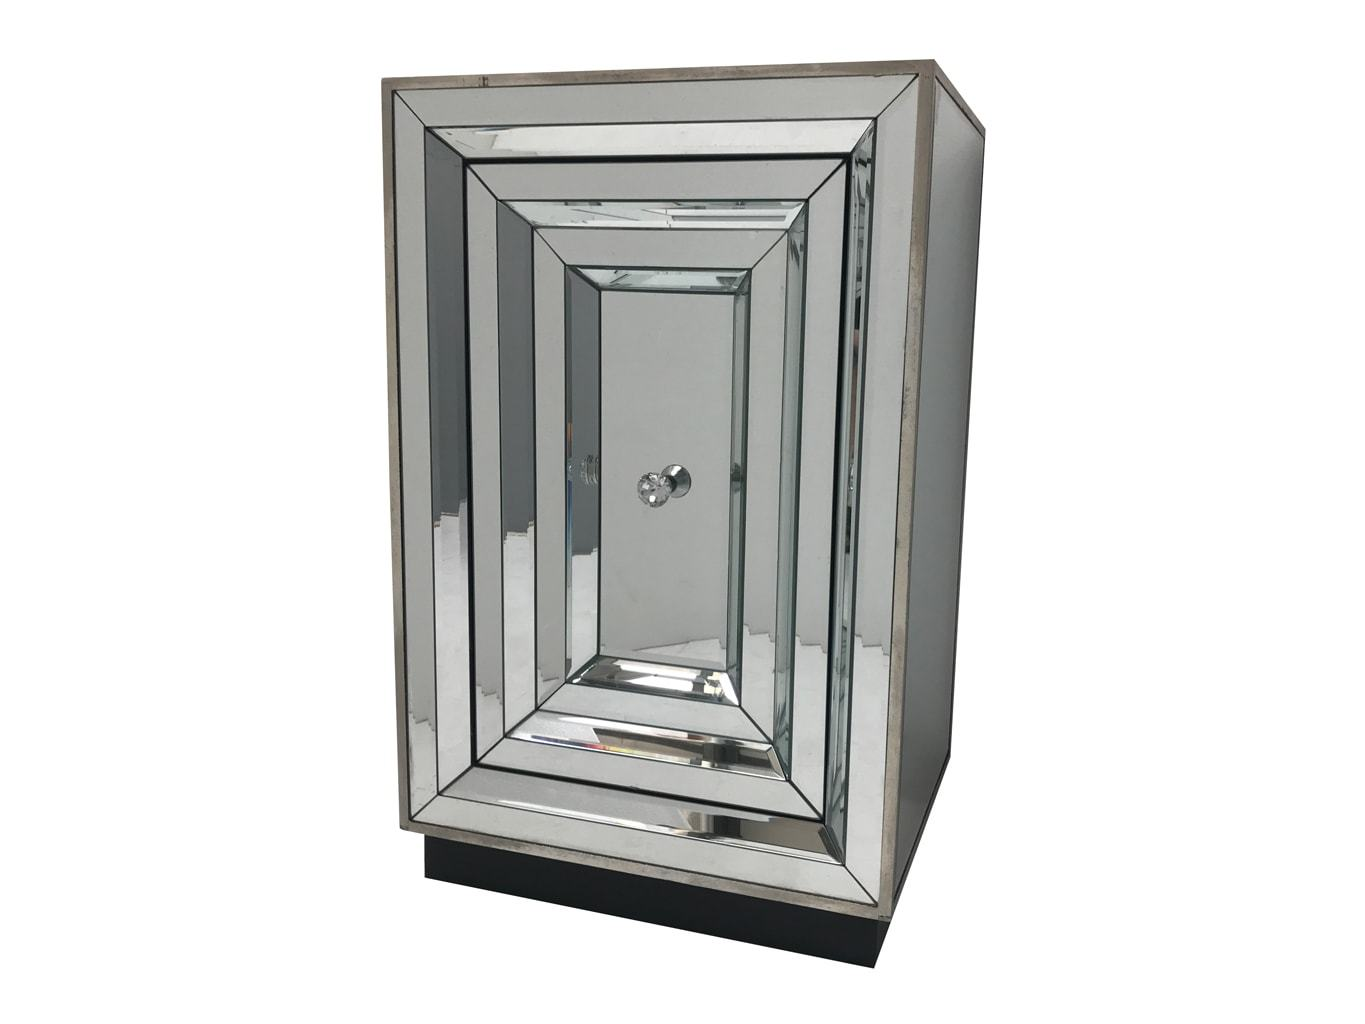 Mirrored side table with door and diamante handle in the middle